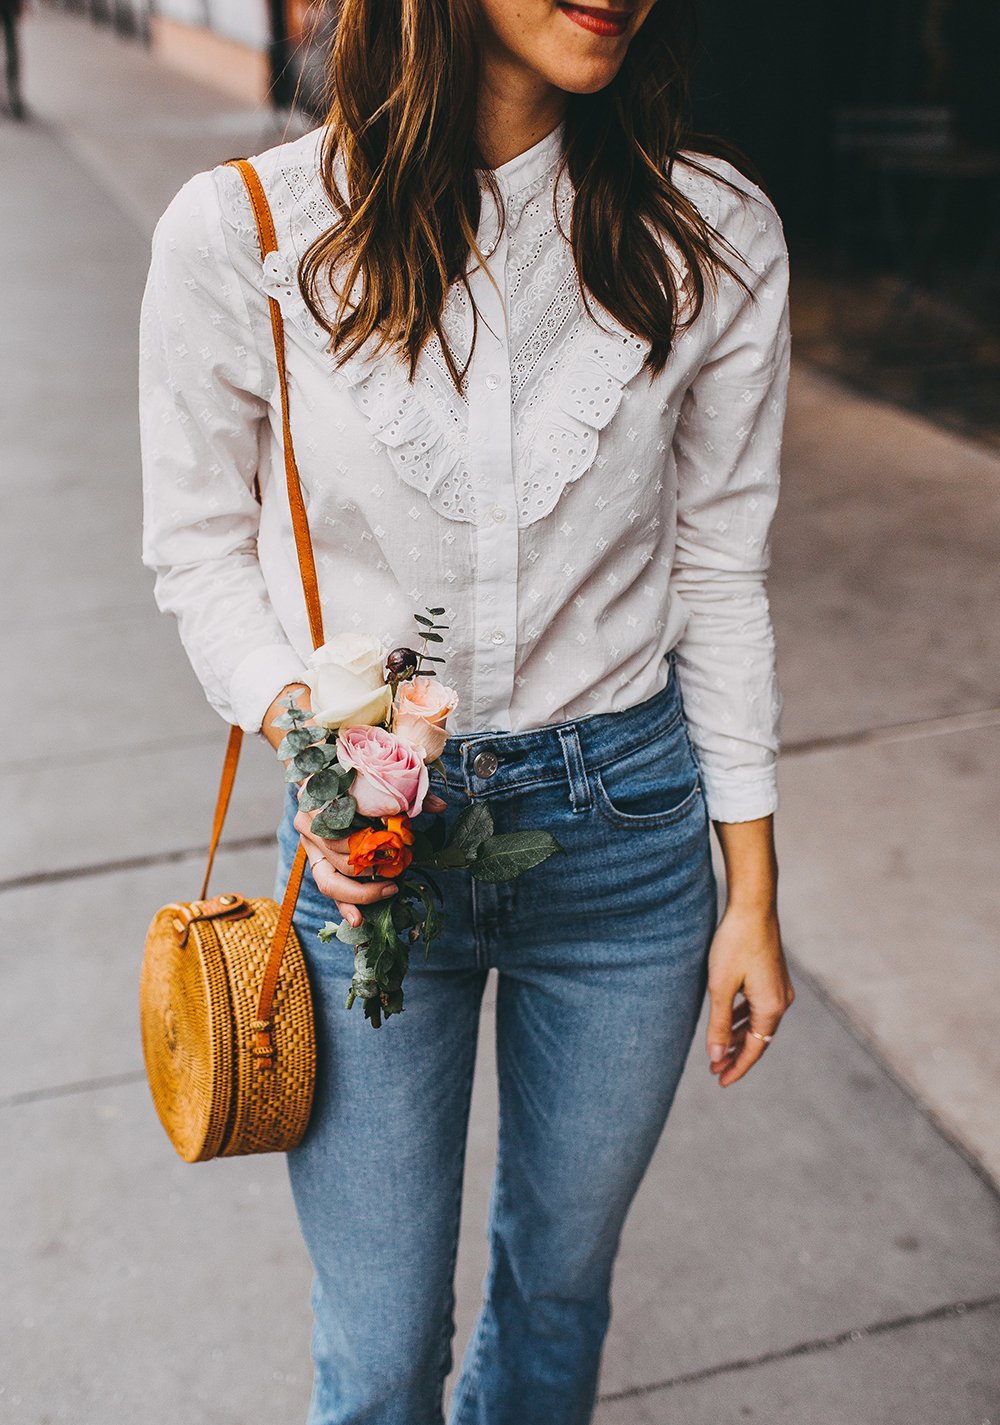 livvyland-blog-olivia-watson-austin-texas-fashion-style-blogger-sezane-white-eyelet-blouse-kick-flare-jeans-simple-spring-outfit-7